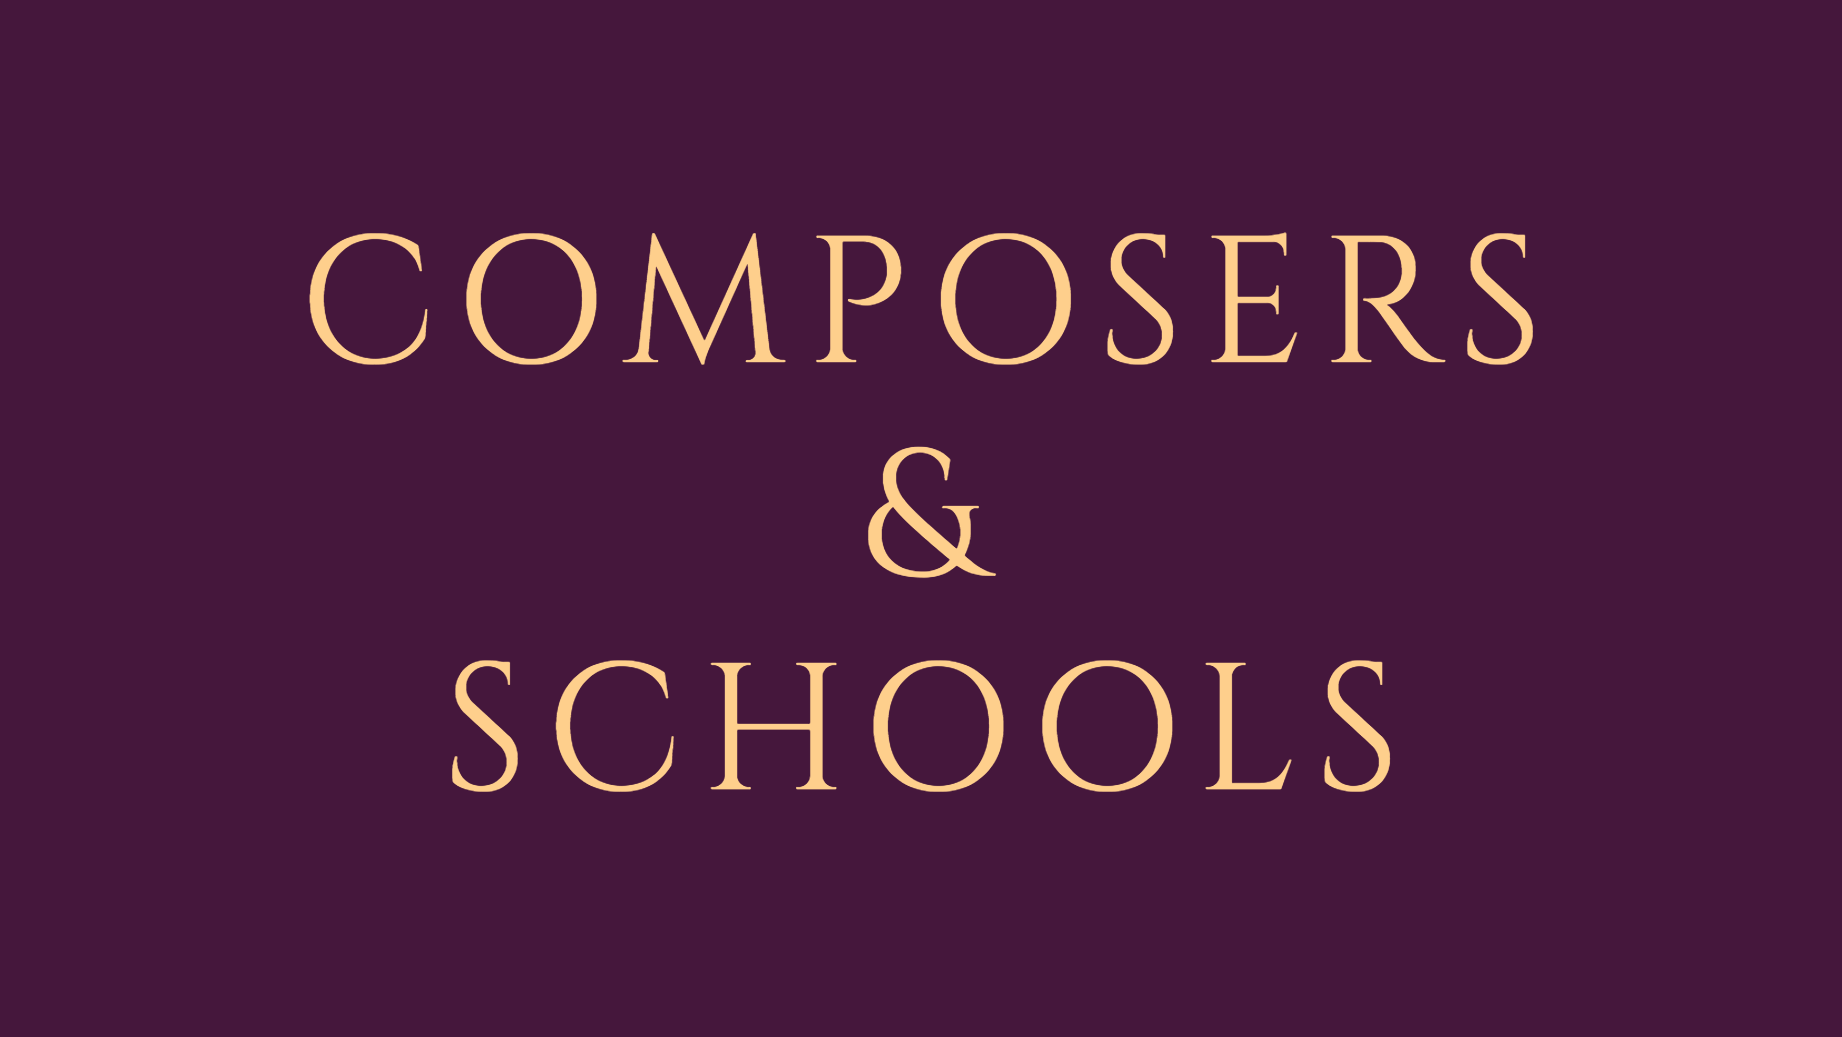 Lisa Oman, of San Francisco Contemporary Music Players, runs this commissioning program designed to facilitate collaborative music commission opportunities for high school ensembles and American composers. Check out their past project and see how you can get involved by submitting an inquiry form.